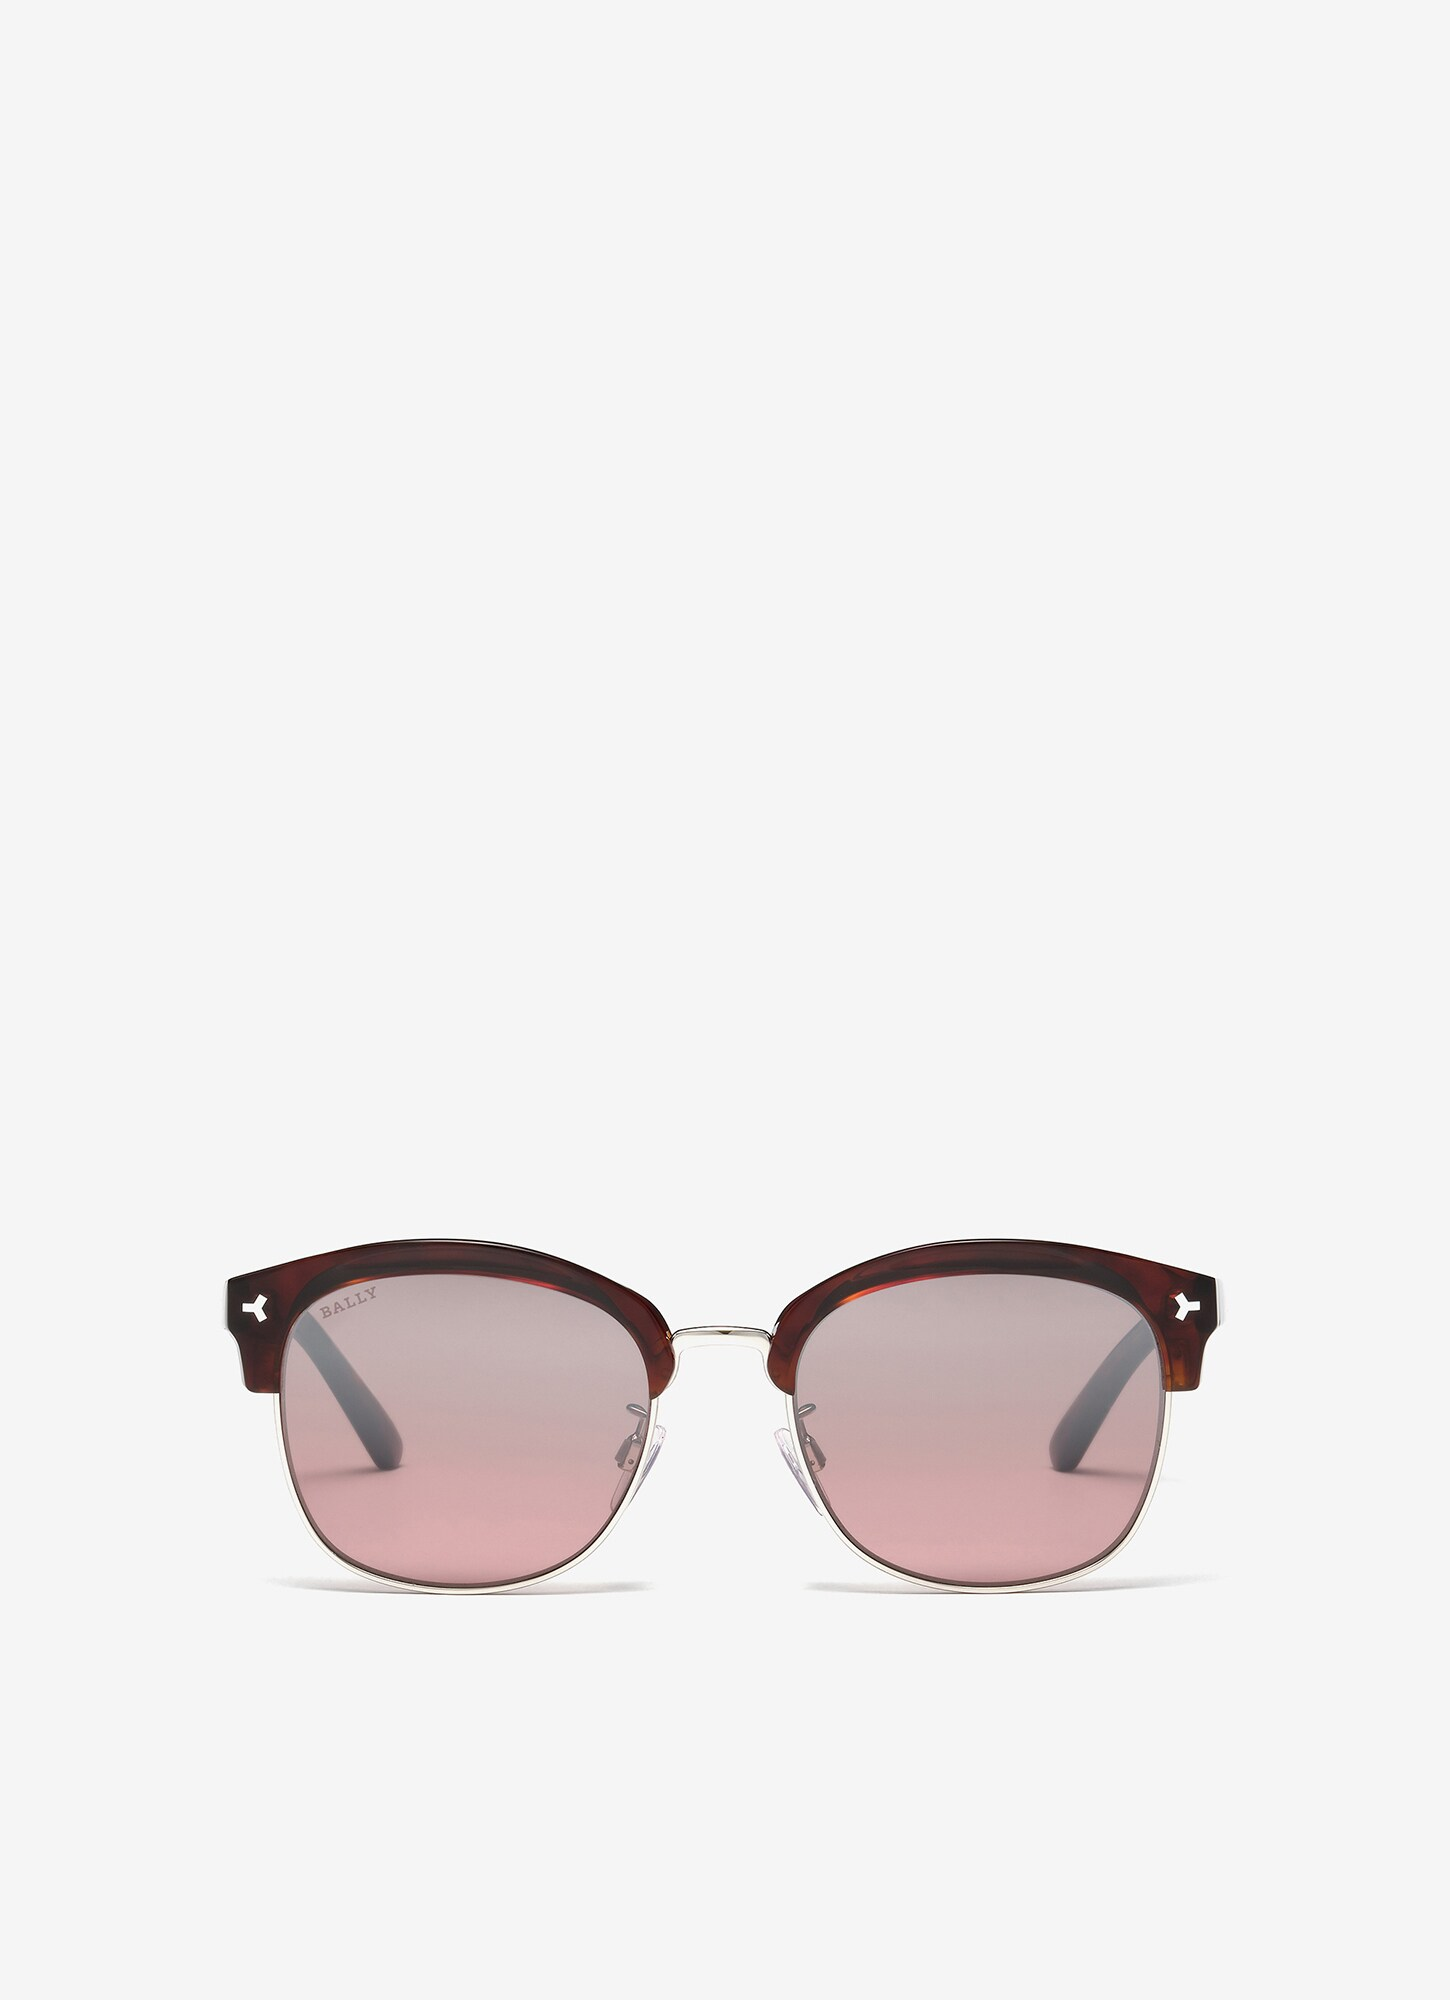 HYPE BROWLINE SUNGLASSES| Unisex Sunglasses | Havana Acetate | Bally